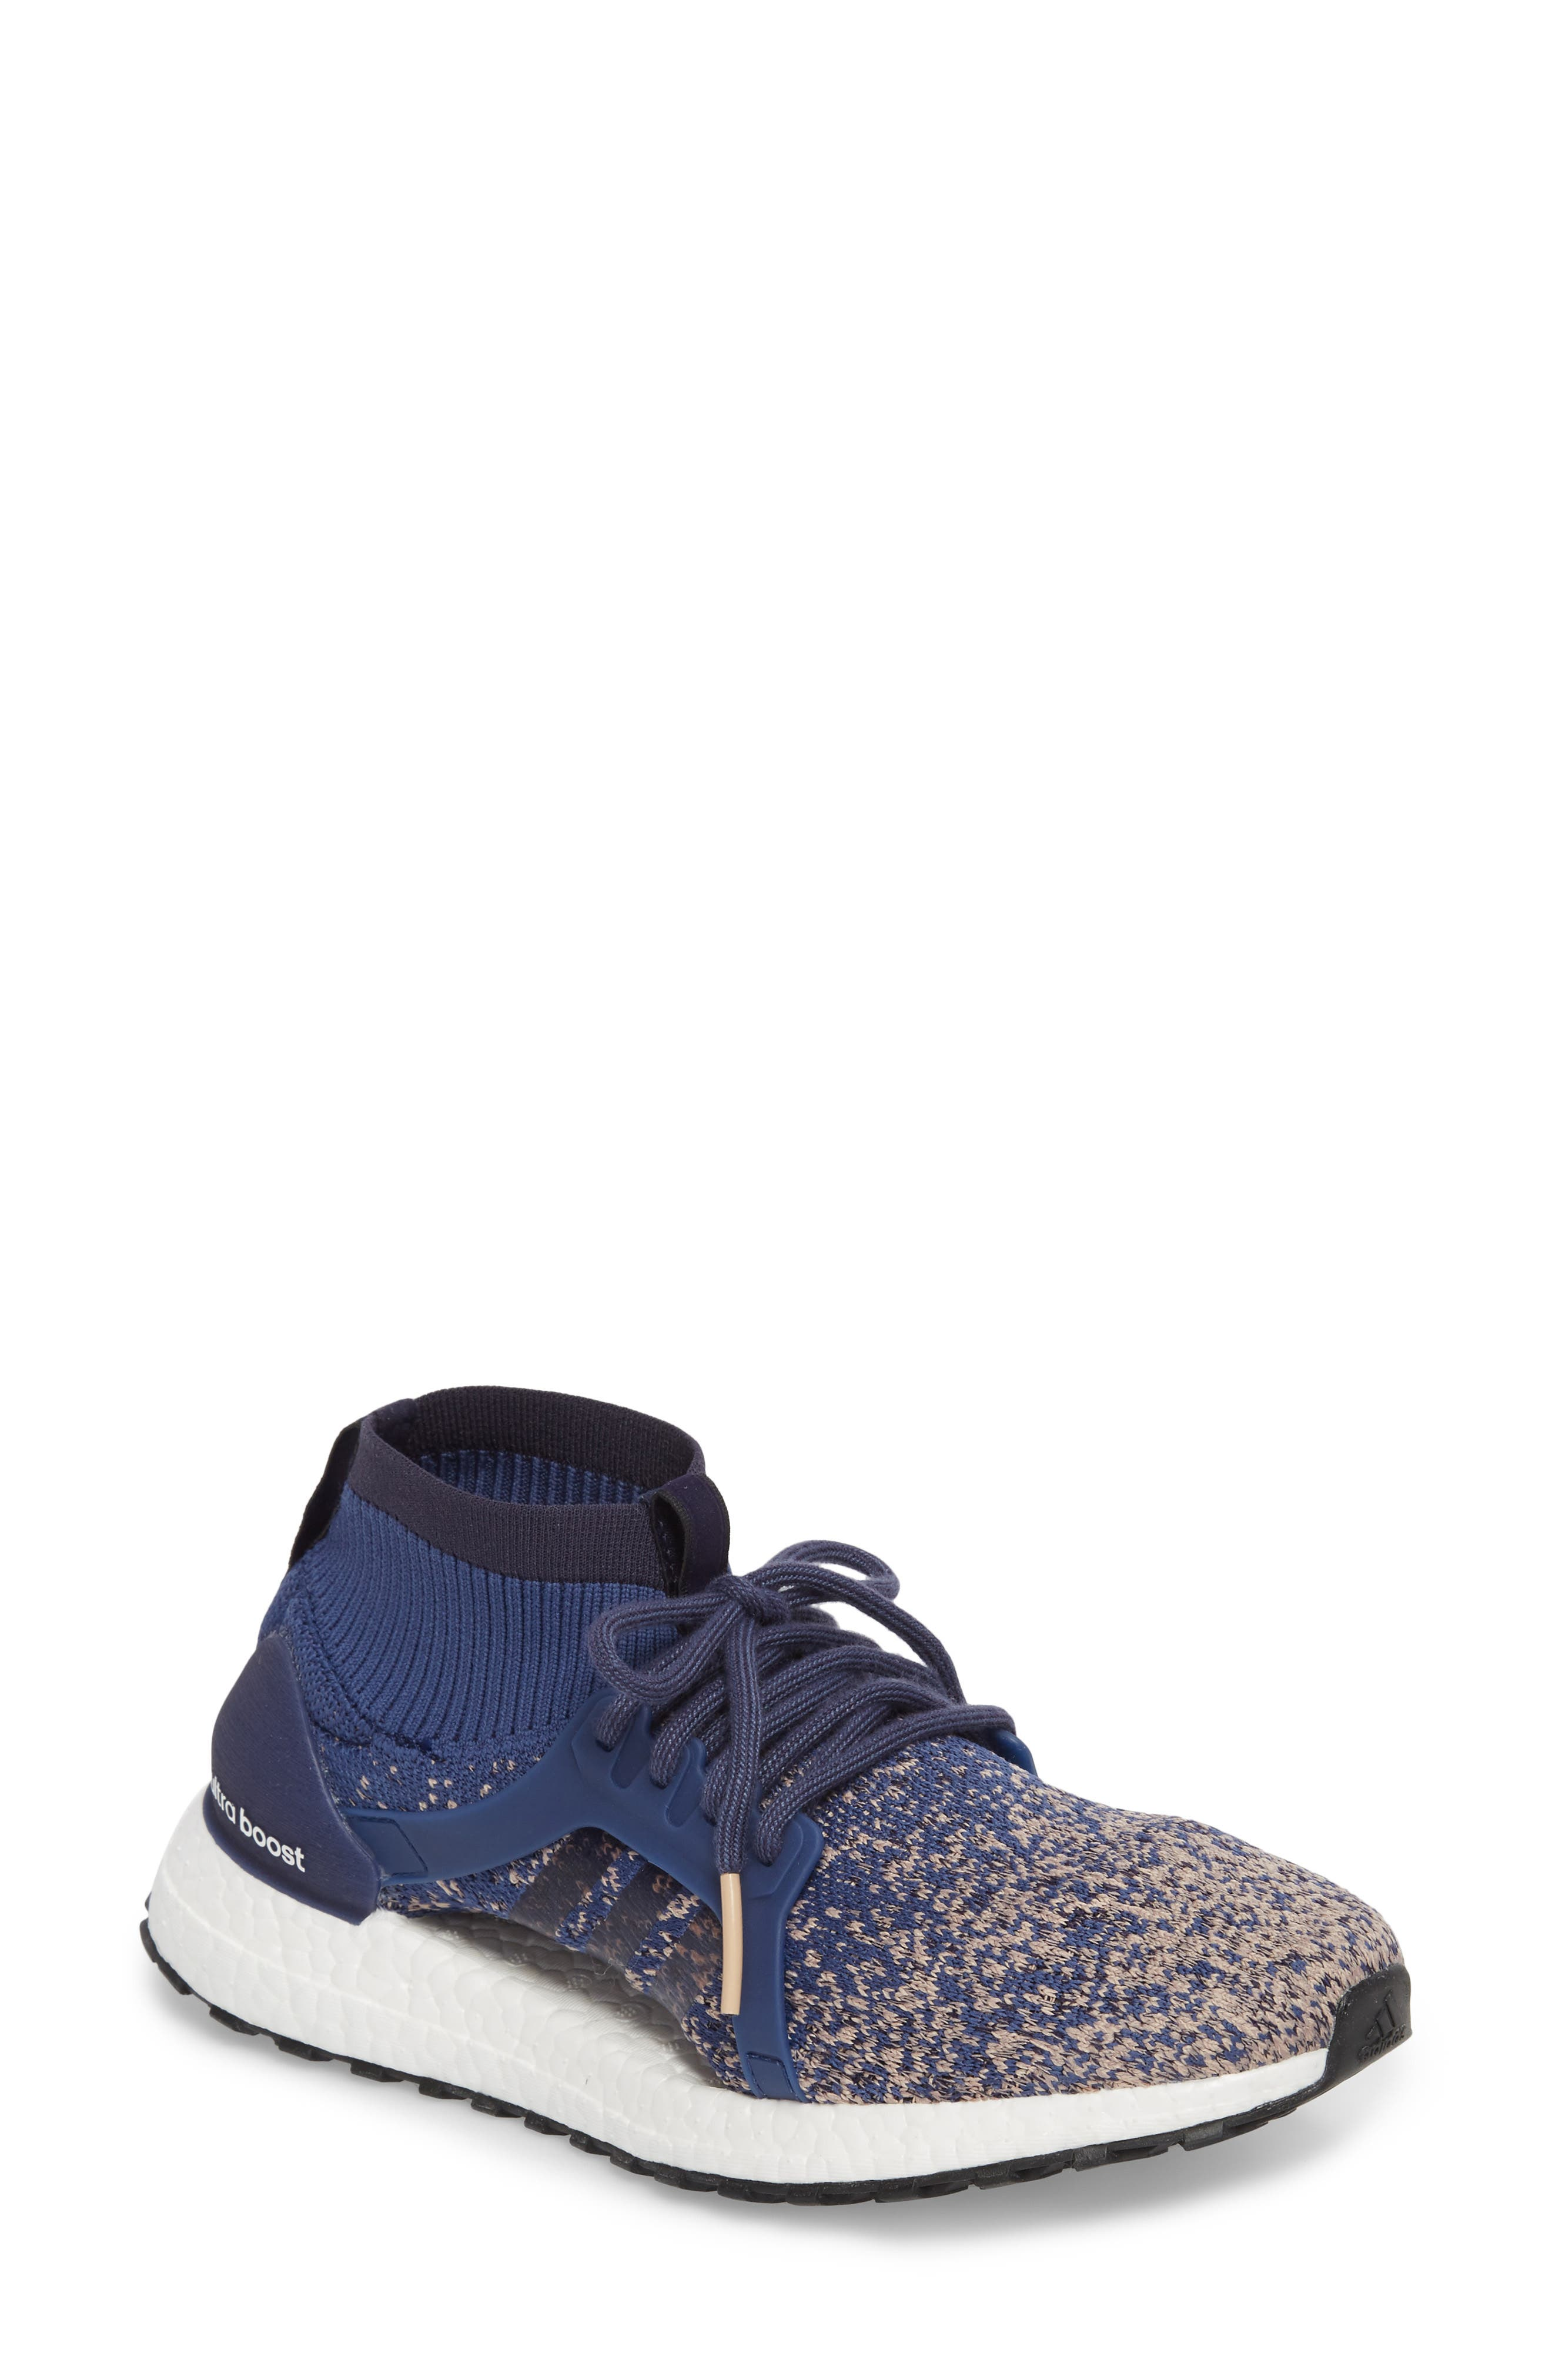 UltraBoost X All Terrain Water Resistant Running Shoe,                         Main,                         color, Noble Indigo/ Noble Indigo